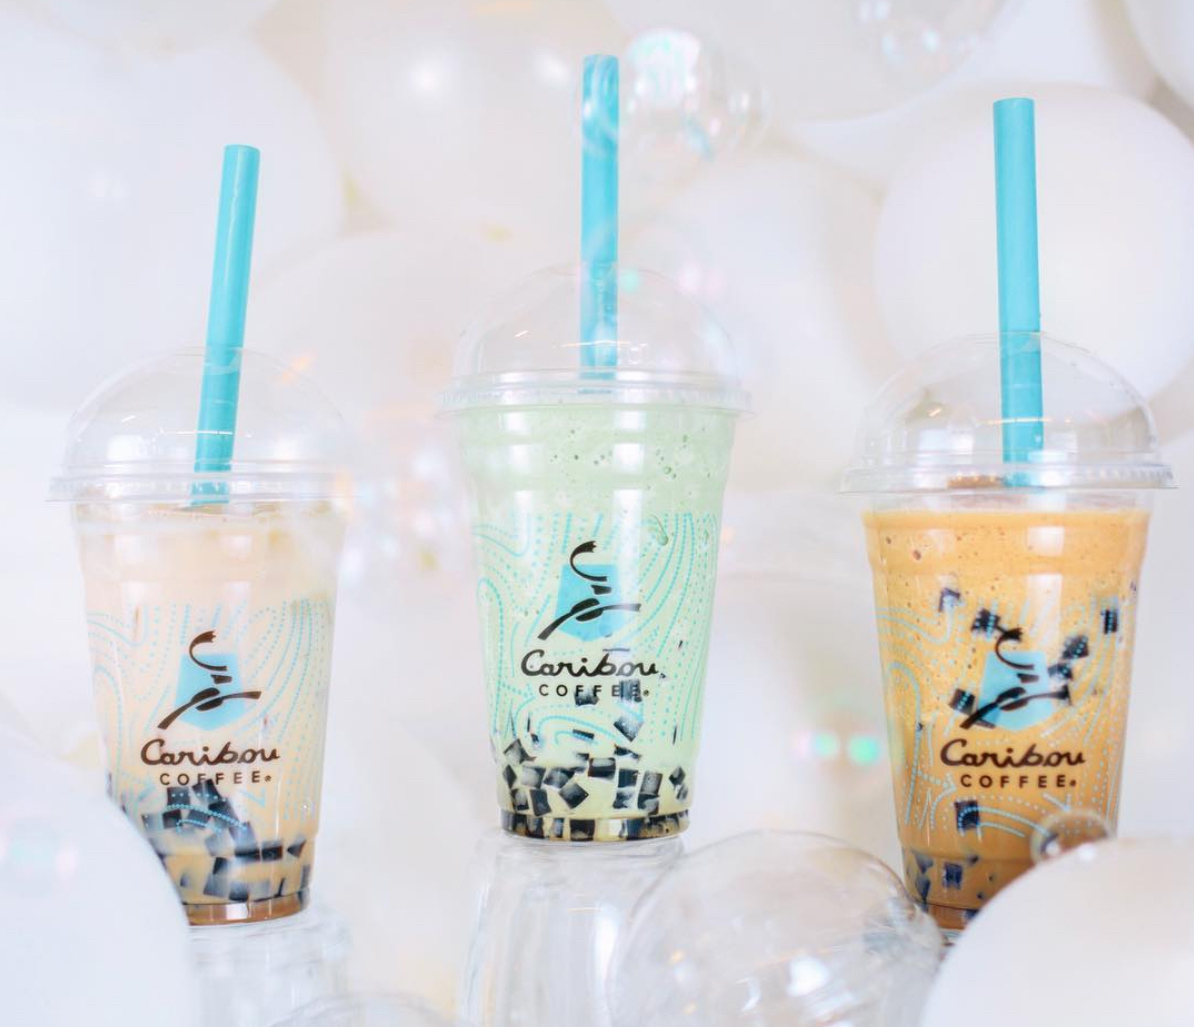 Caribou Coffee bubble coffee